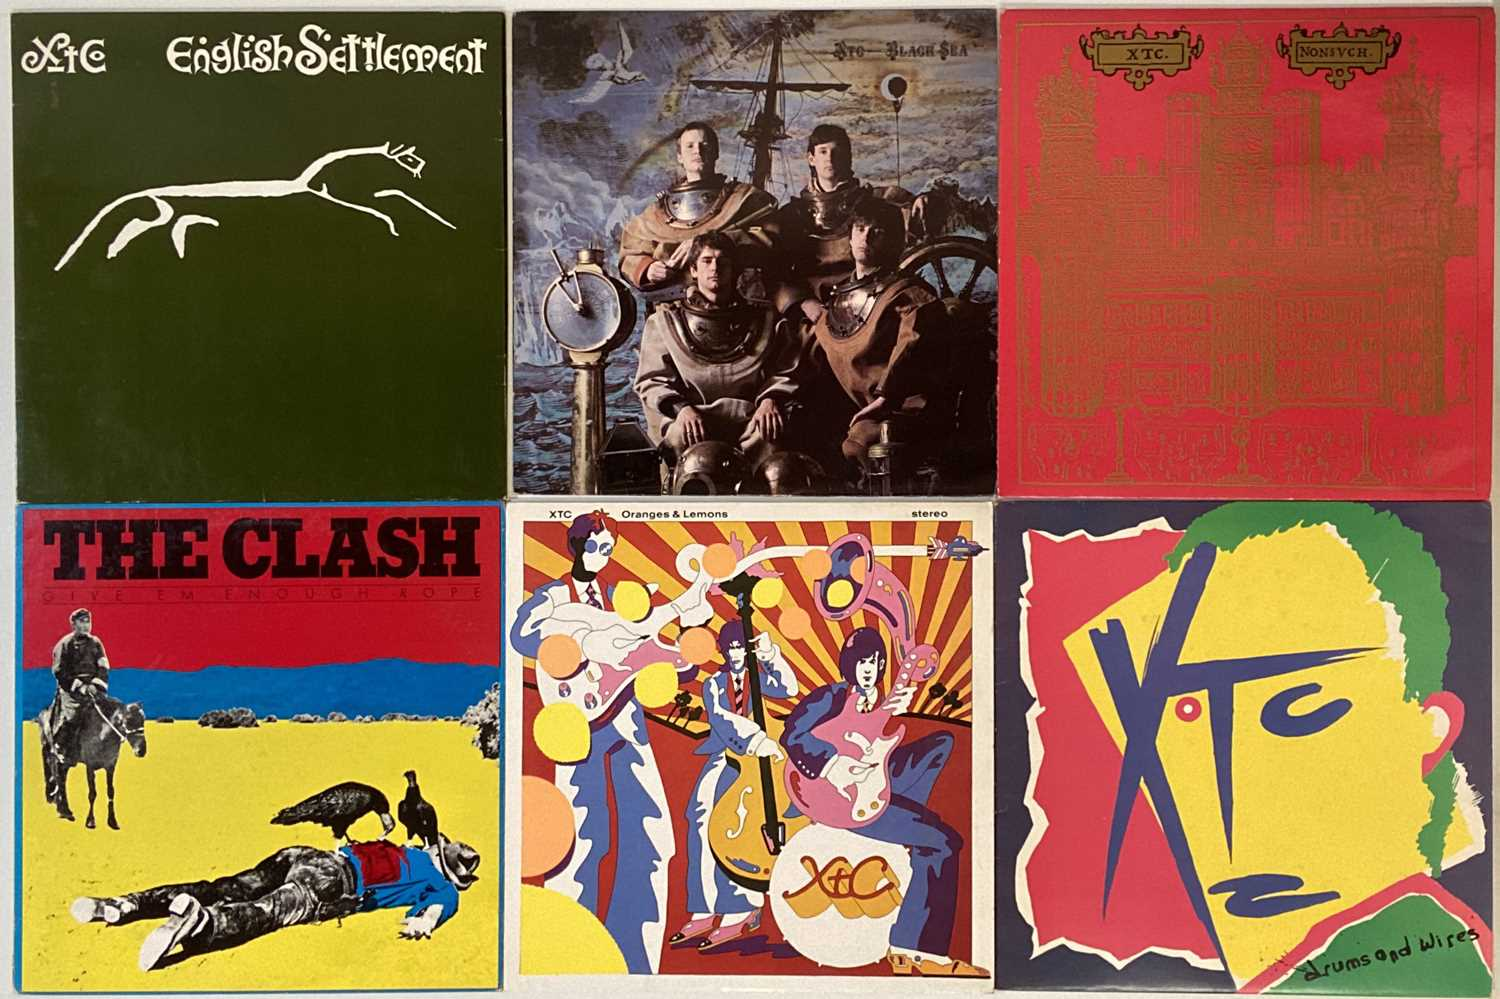 PUNK/INDIE/NEW-WAVE/COOL POP – LPs - Image 2 of 5